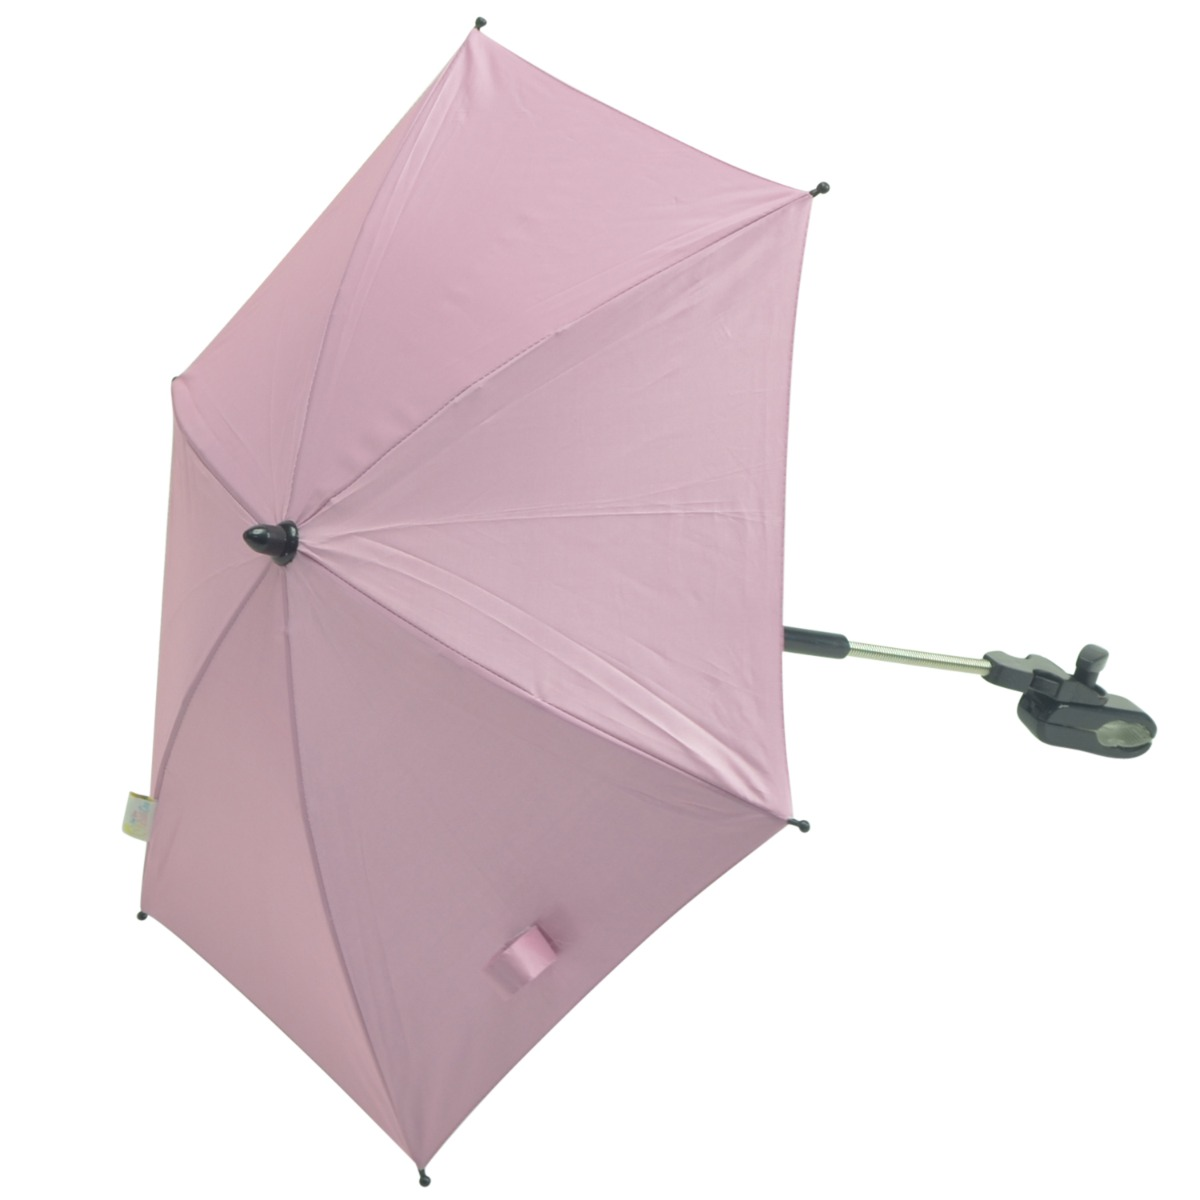 Baby-Parasol-Universal-Sun-Umbrella-Shade-Maker-Canopy-For-Pushchair-Pram-Buggy thumbnail 50